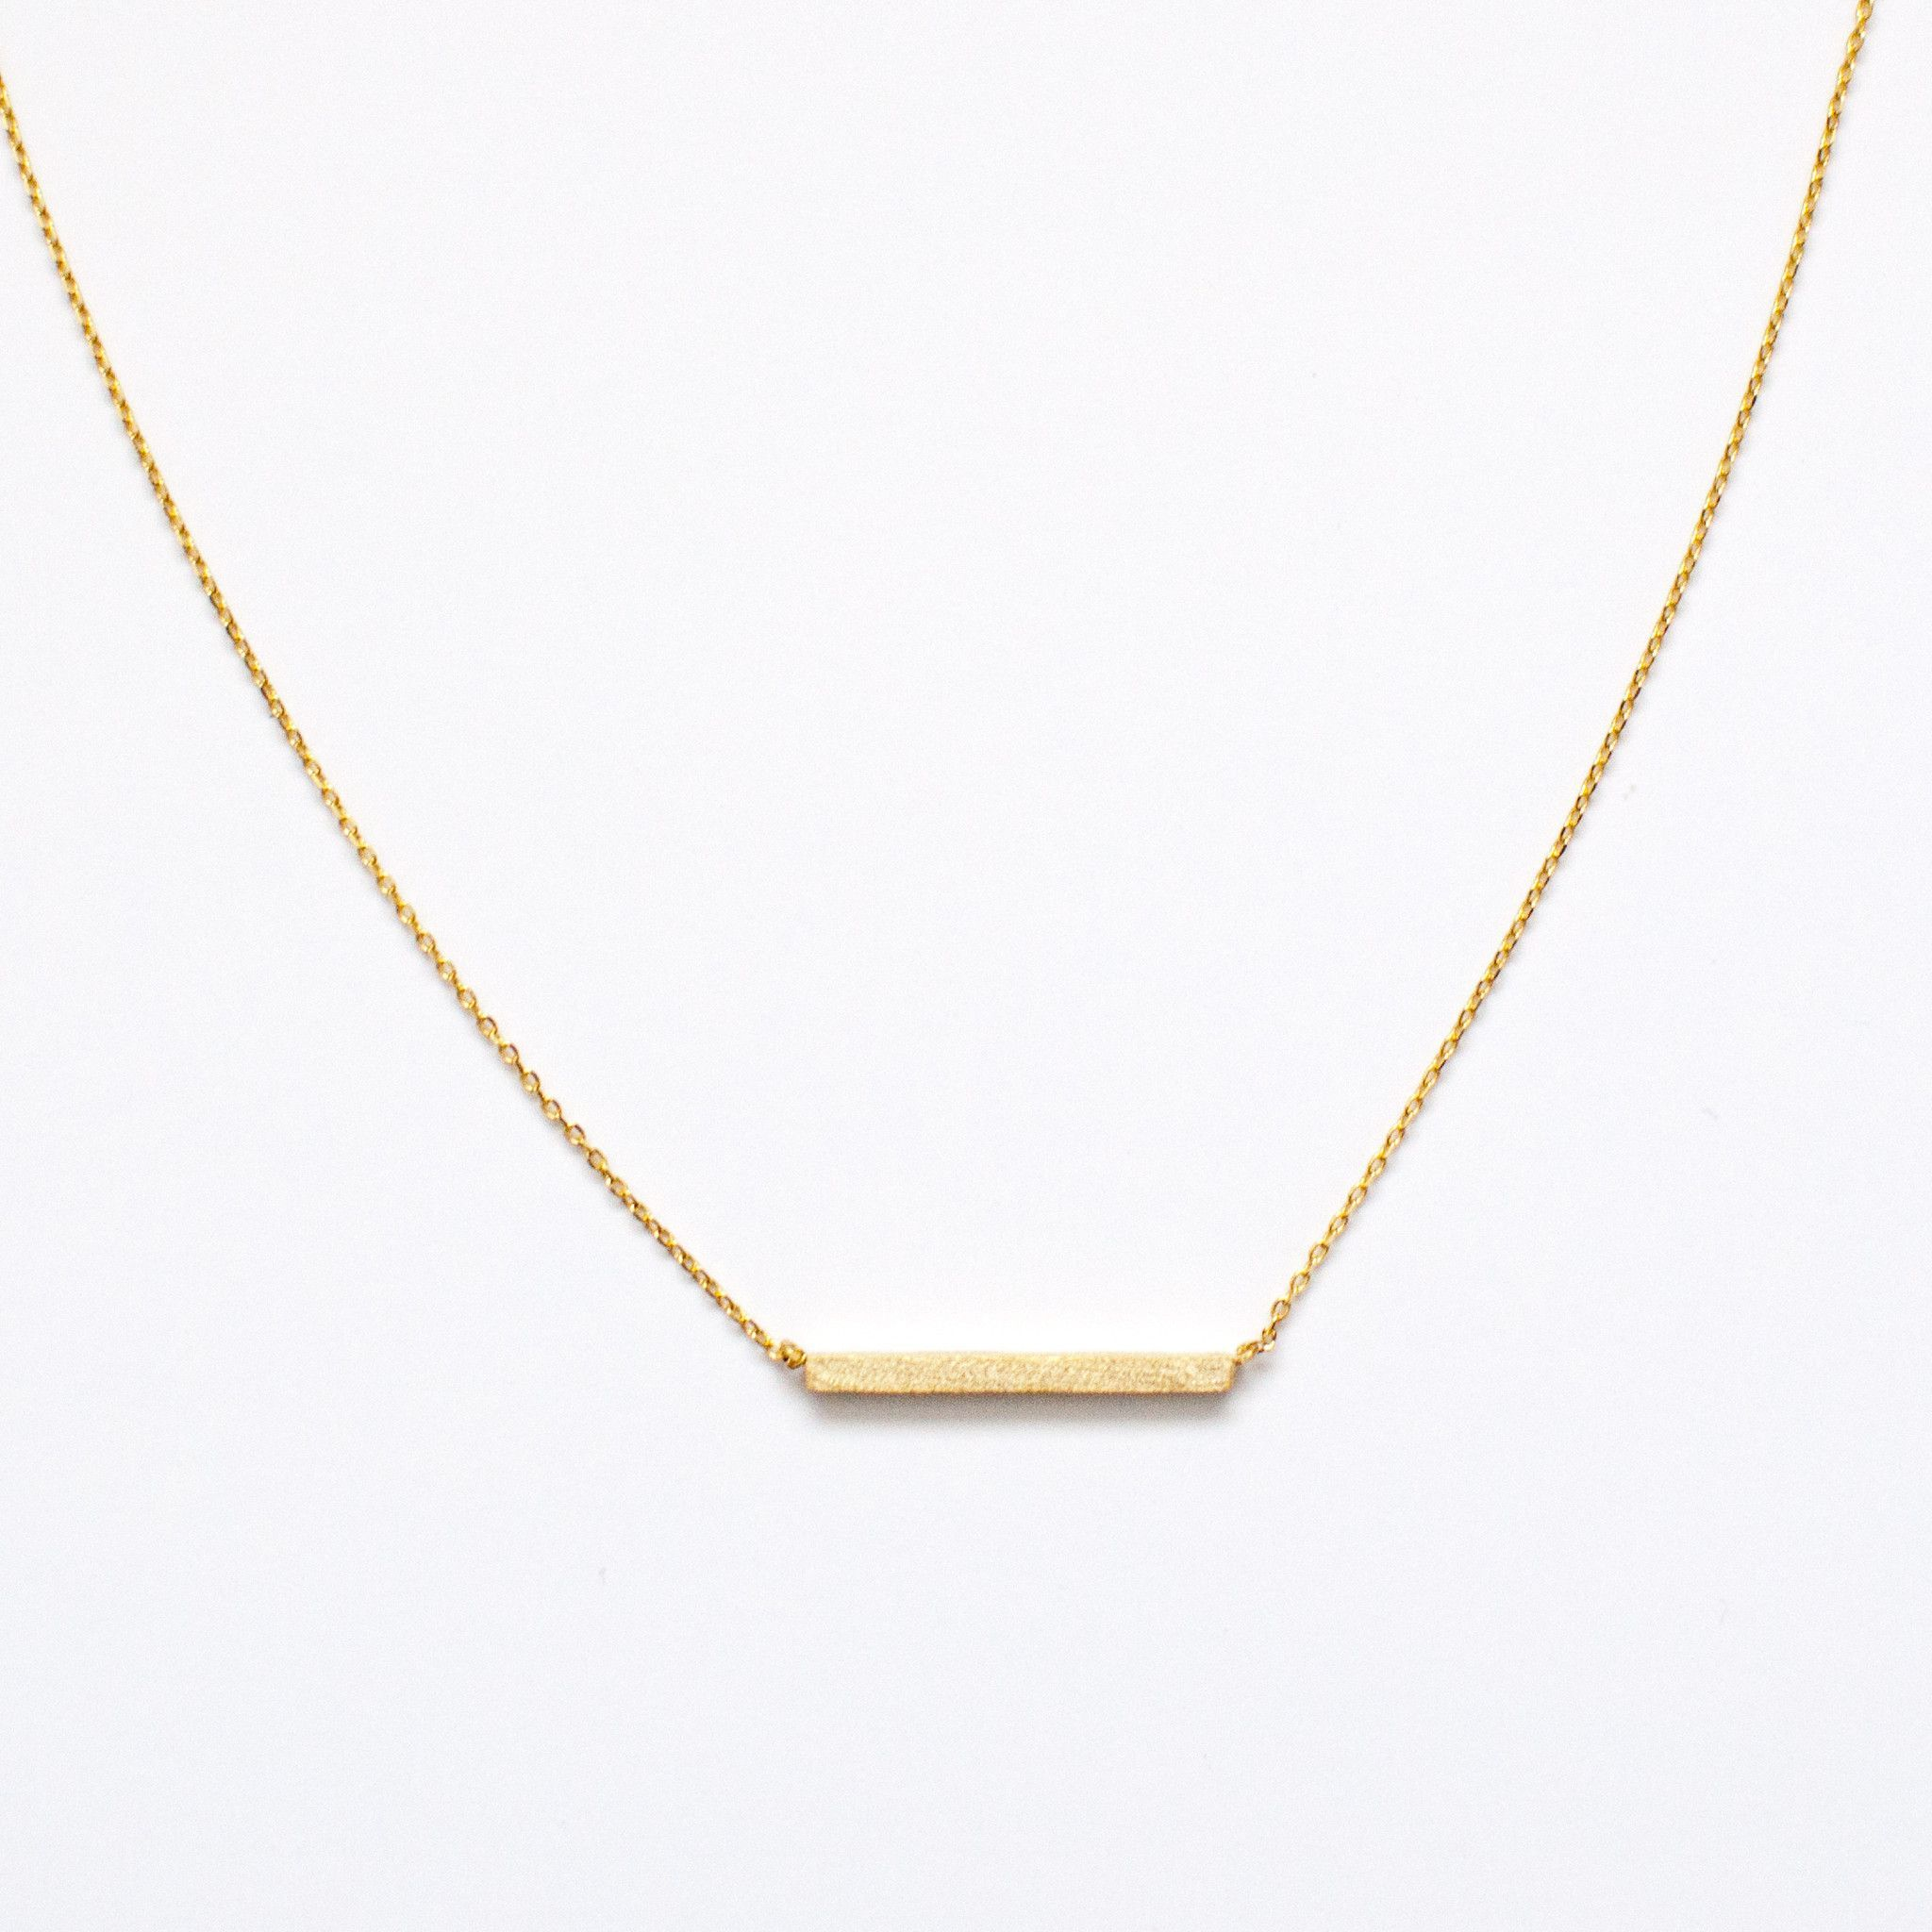 Dainty gold bar necklace perfect for the minimalist and simple dainty gold bar necklace perfect for the minimalist and simple accessorizing 16 chain mozeypictures Image collections